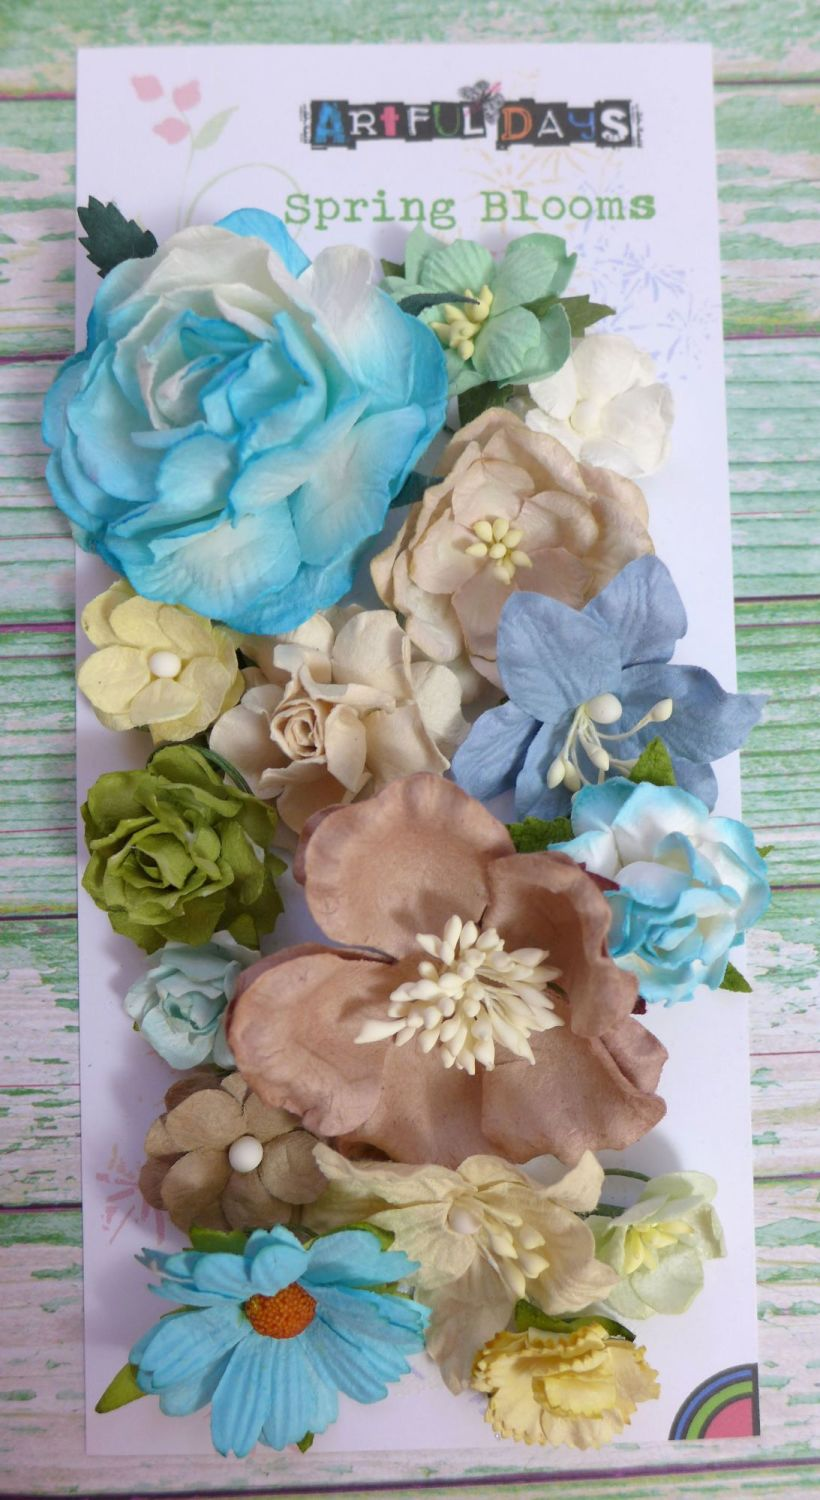 Spring Blooms - Mulberry Paper Flowers - Spring Breeze